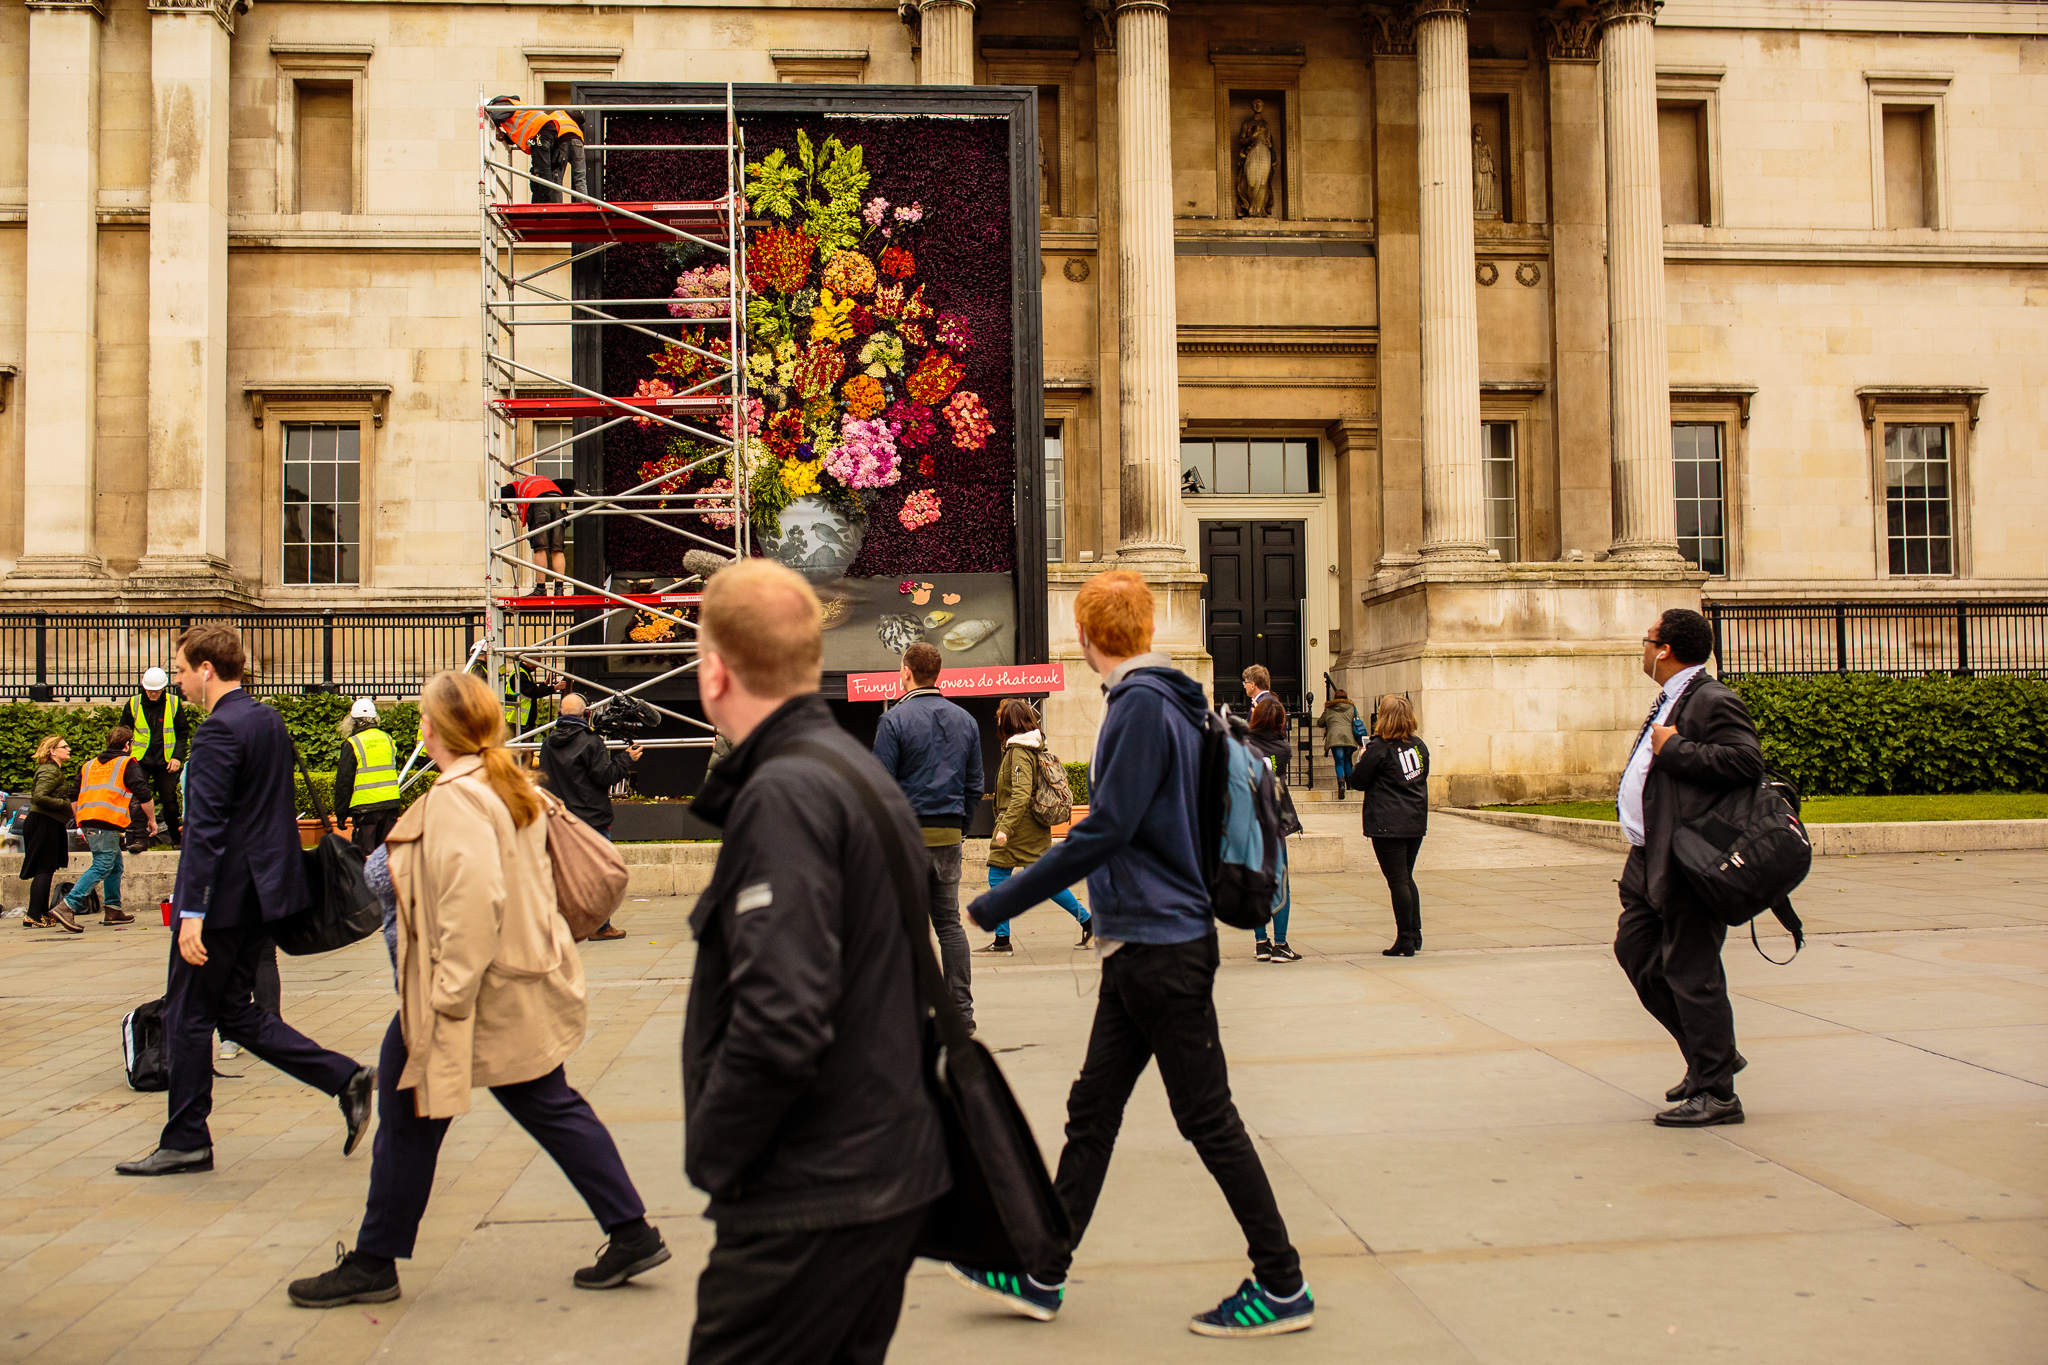 London wakes up to the huge work of art